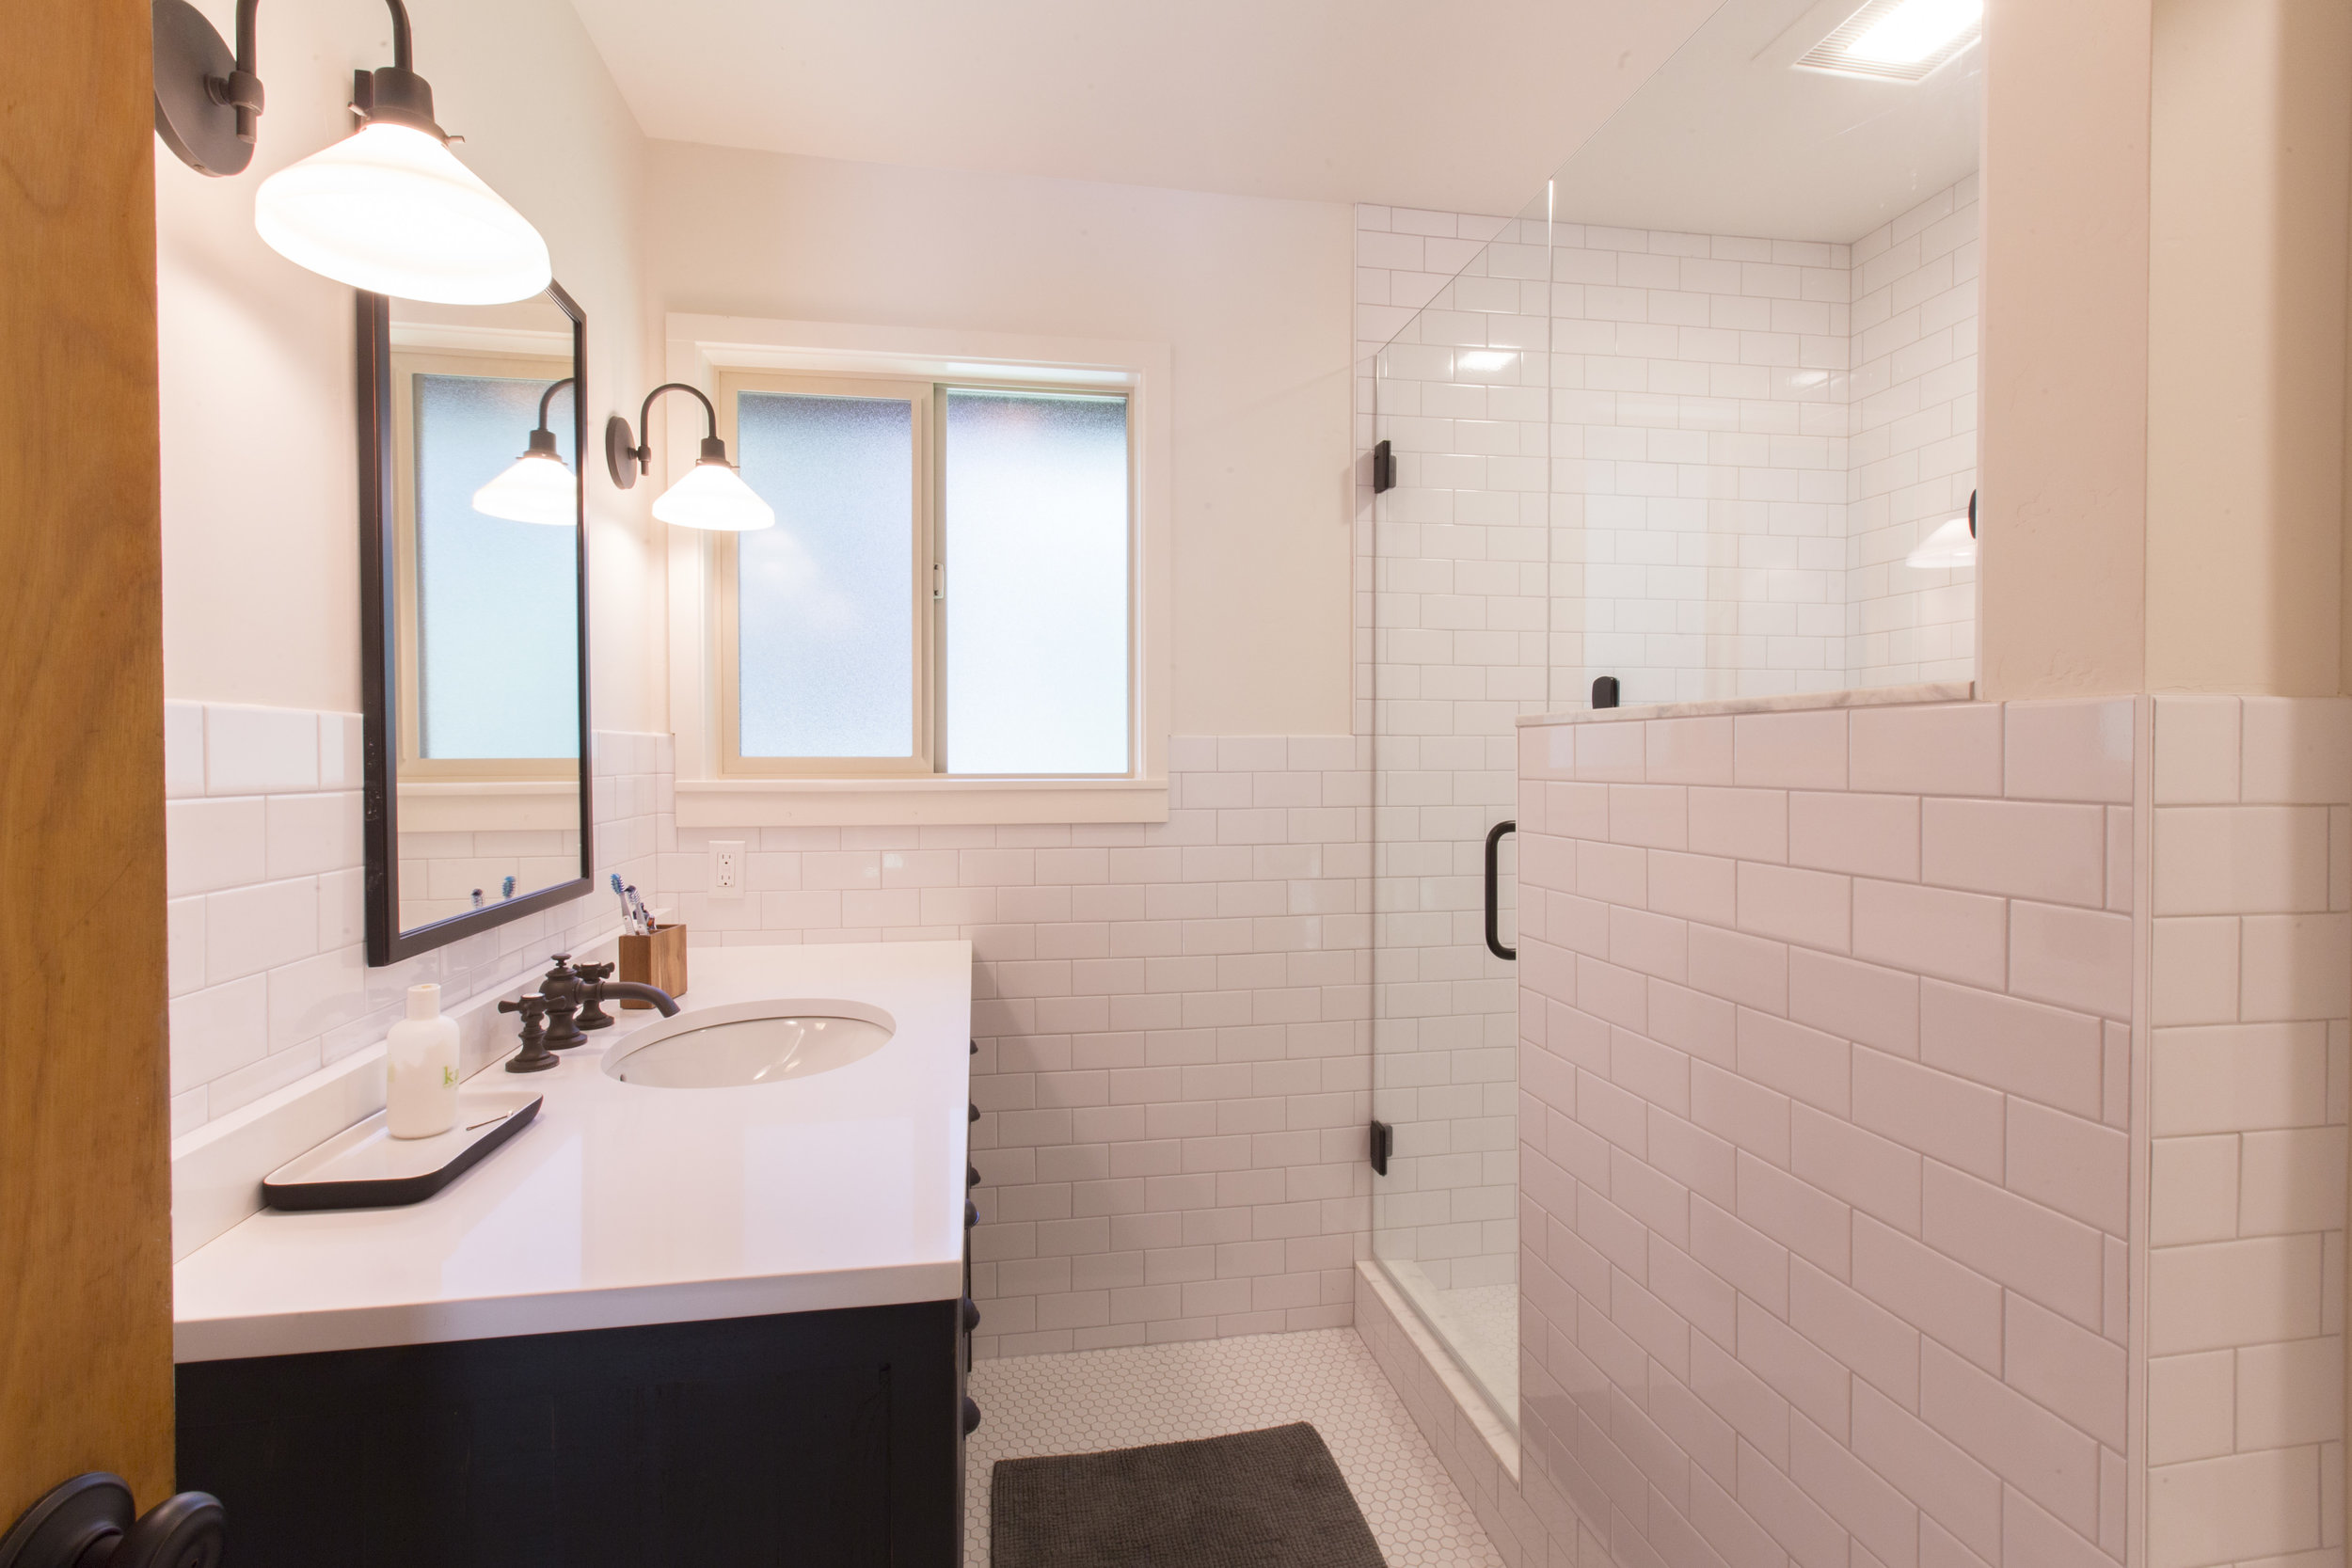 WestShore_HartlineConstruction_Bathroom.jpg